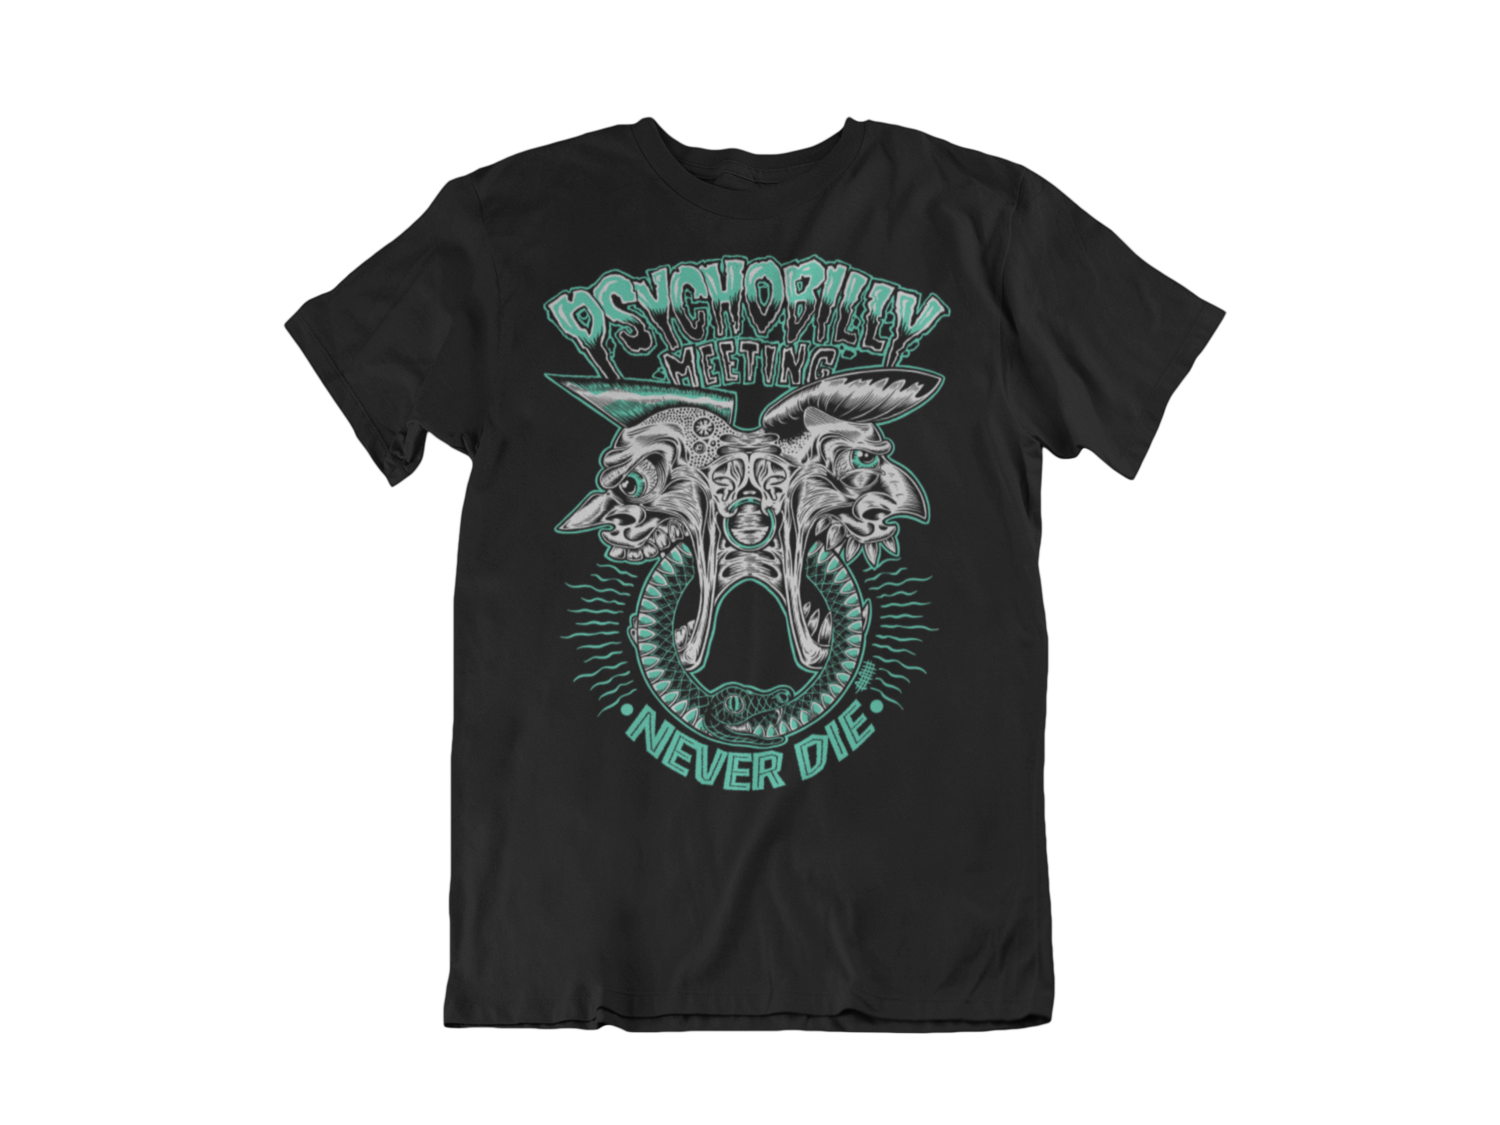 PSYCHOBILLY MEETING T-SHIRT MAN BY OLAFH